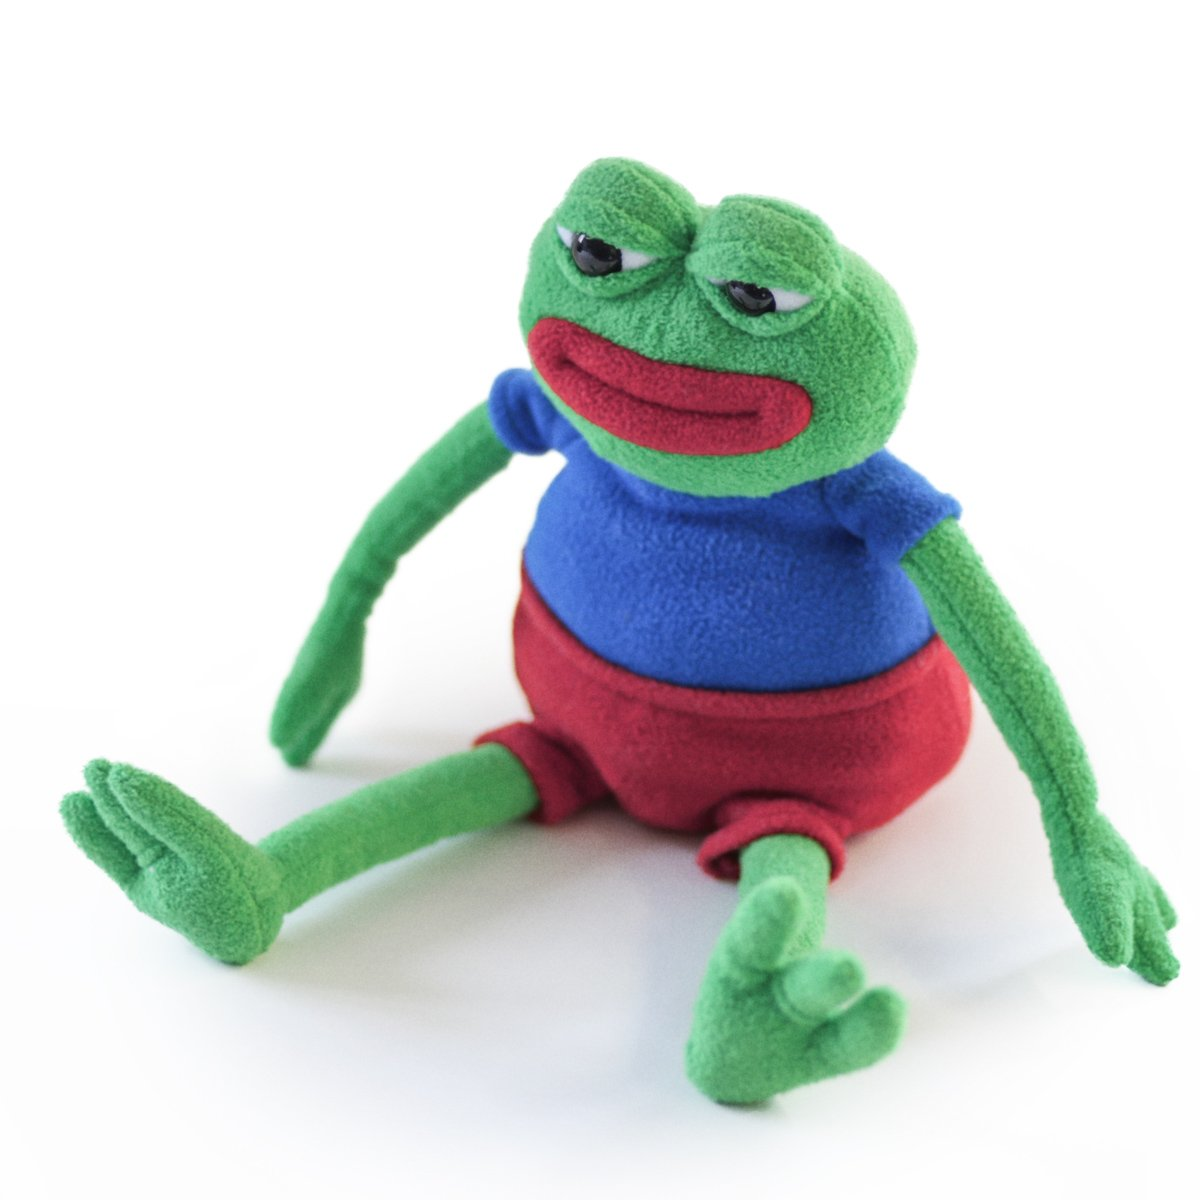 Anatomically Correct The Official Plush Doll Hashtag Collectibles Pepe The Frog